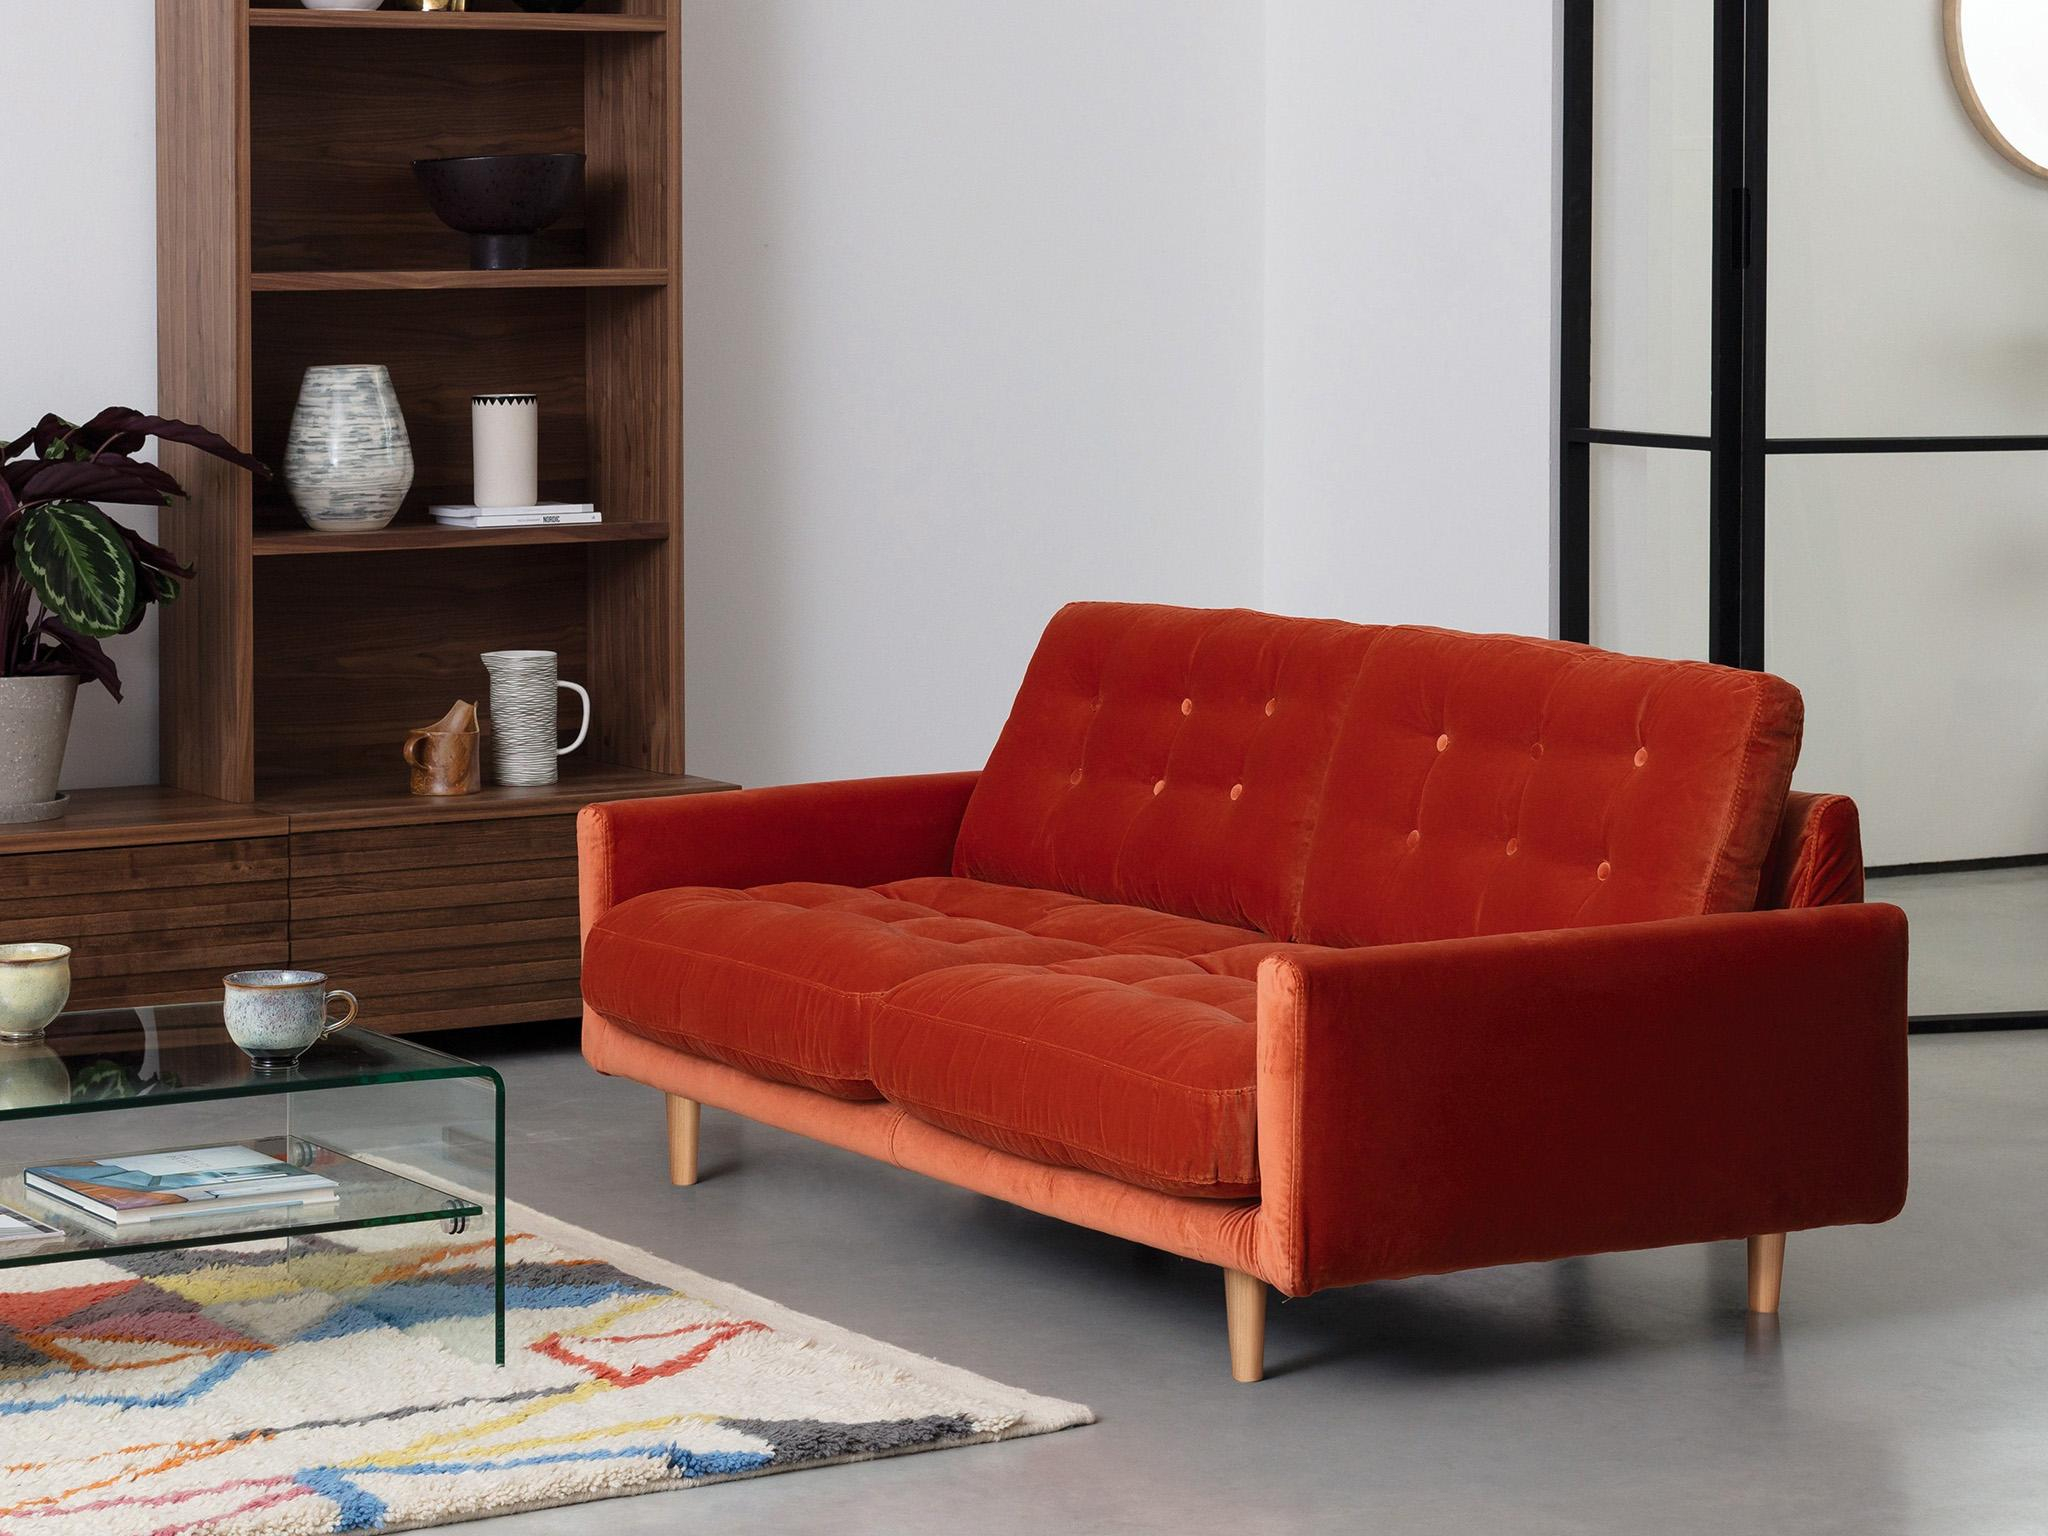 6 Best 2 Seater Sofas   The Independent In Small 2 Seater Sofas (View 10 of 15)